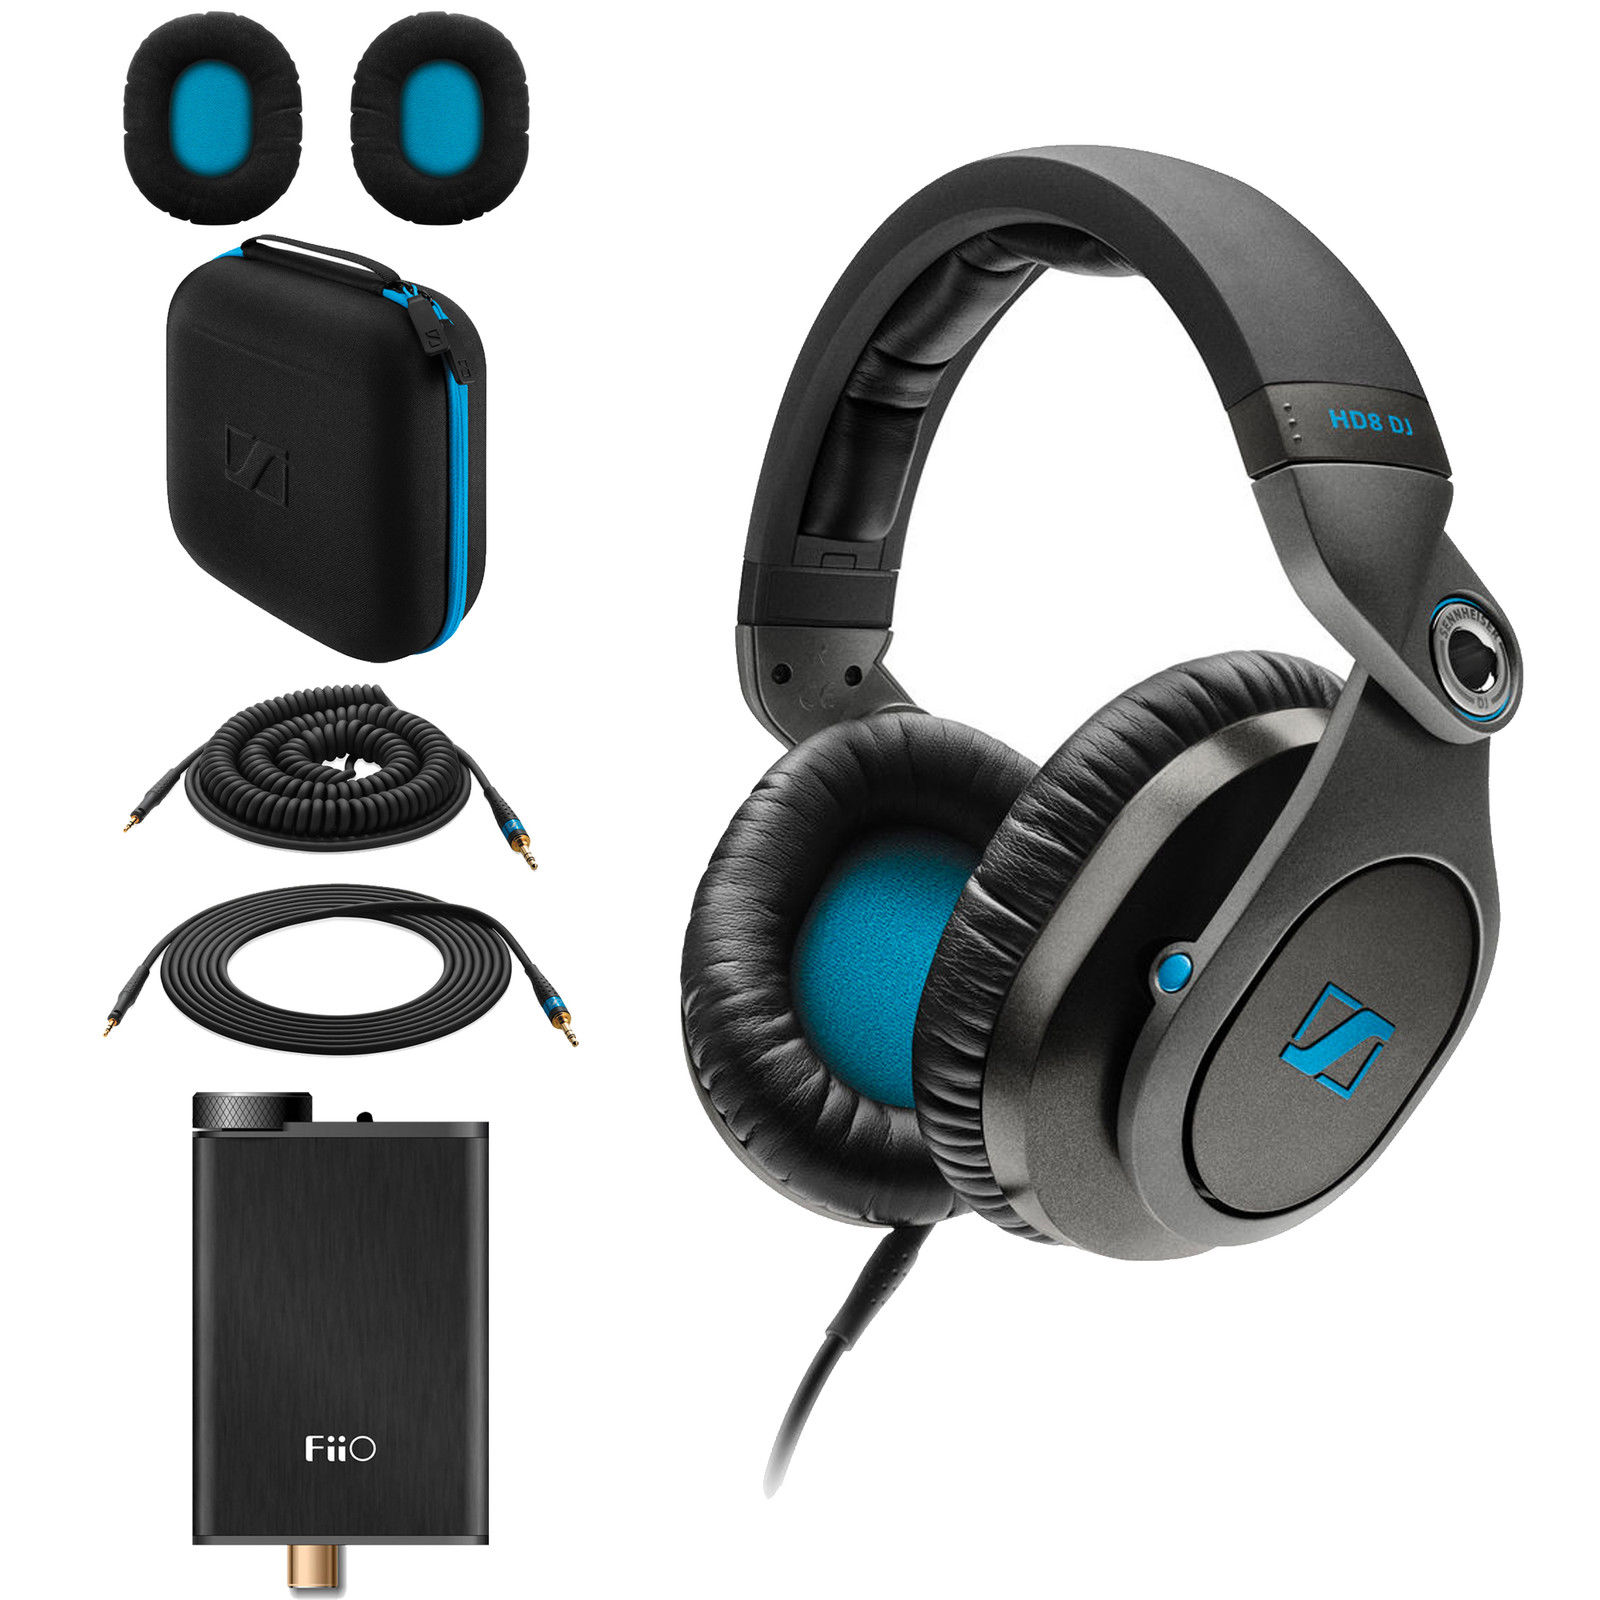 Sennheiser HD8 DJ Closed-Back Headphones + Fiio E10K USB DAC Amplifier + CASE by Sennheiser